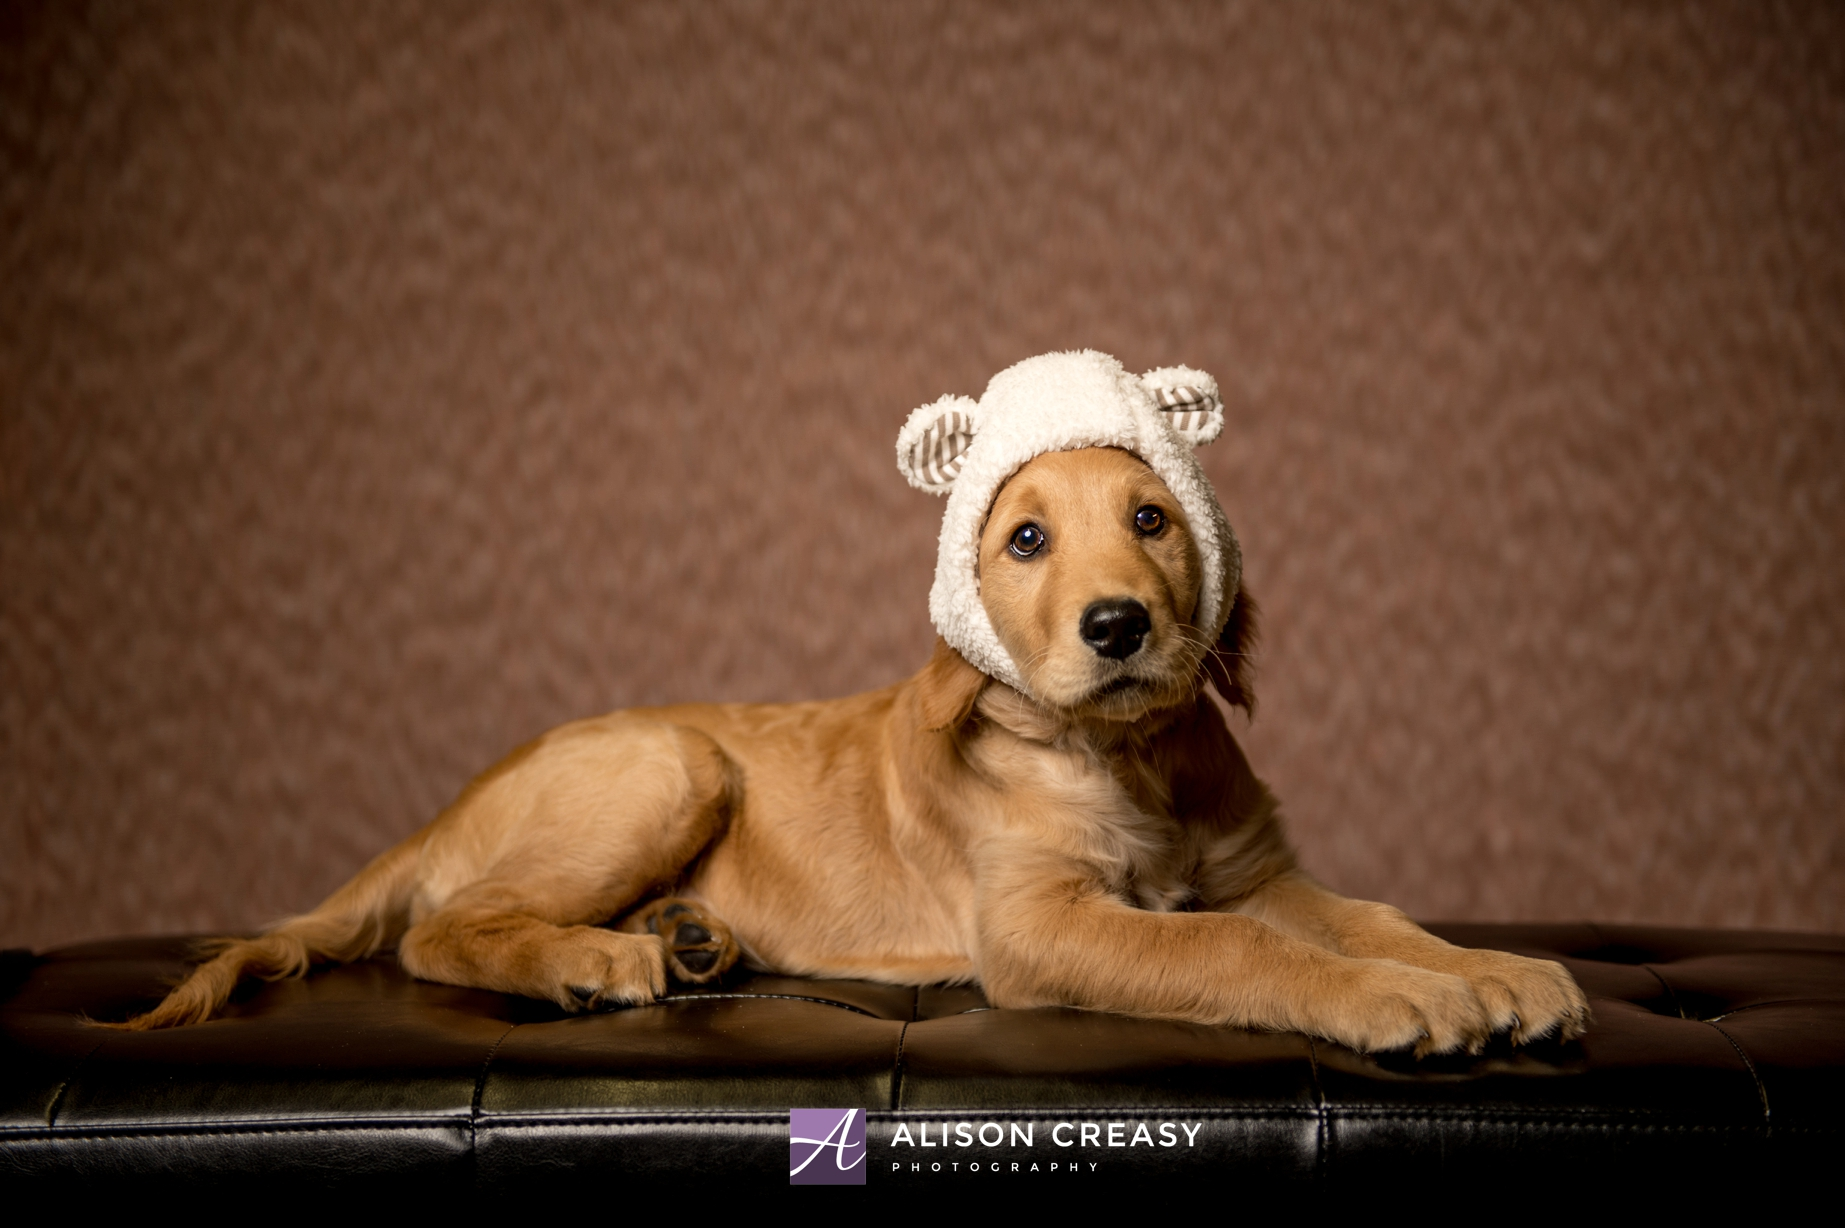 Alison-Creasy-Photography-Lynchburg-VA-Pet-Photographer_0002.jpg